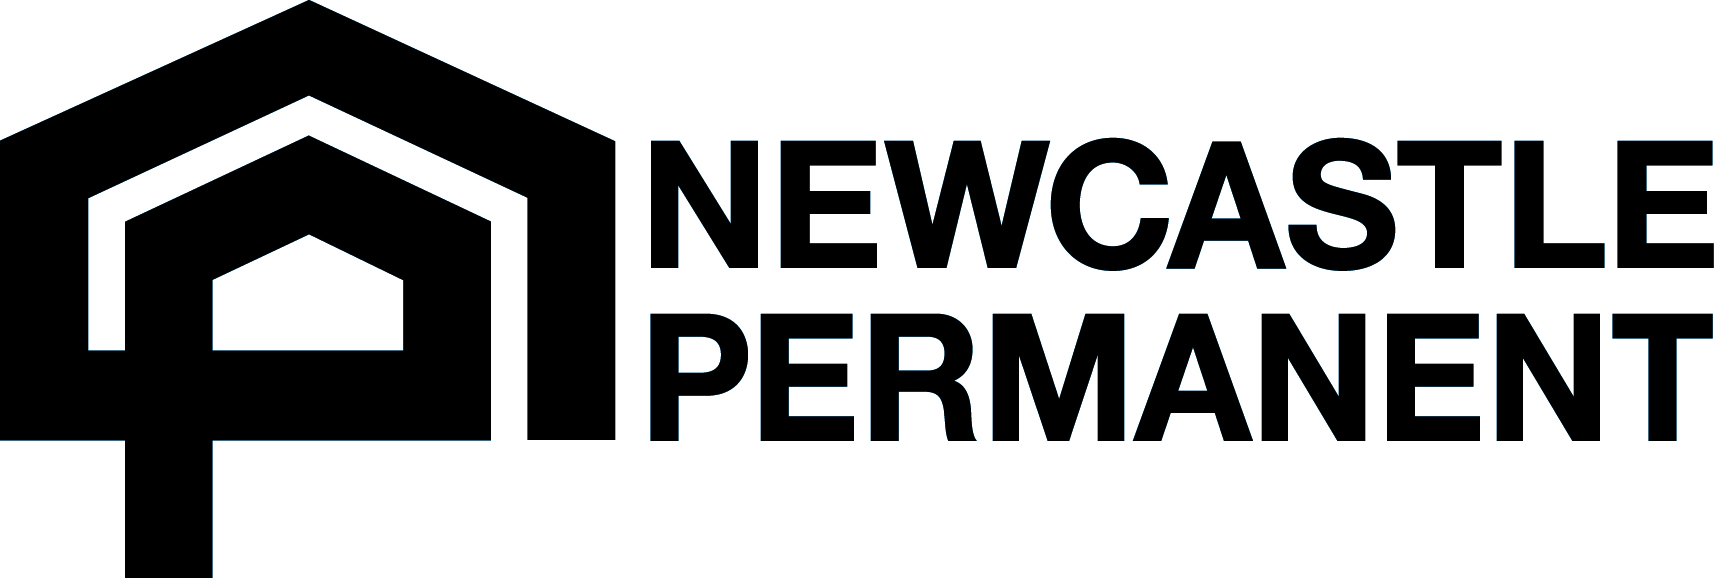 Newcastle Permanent Building Society